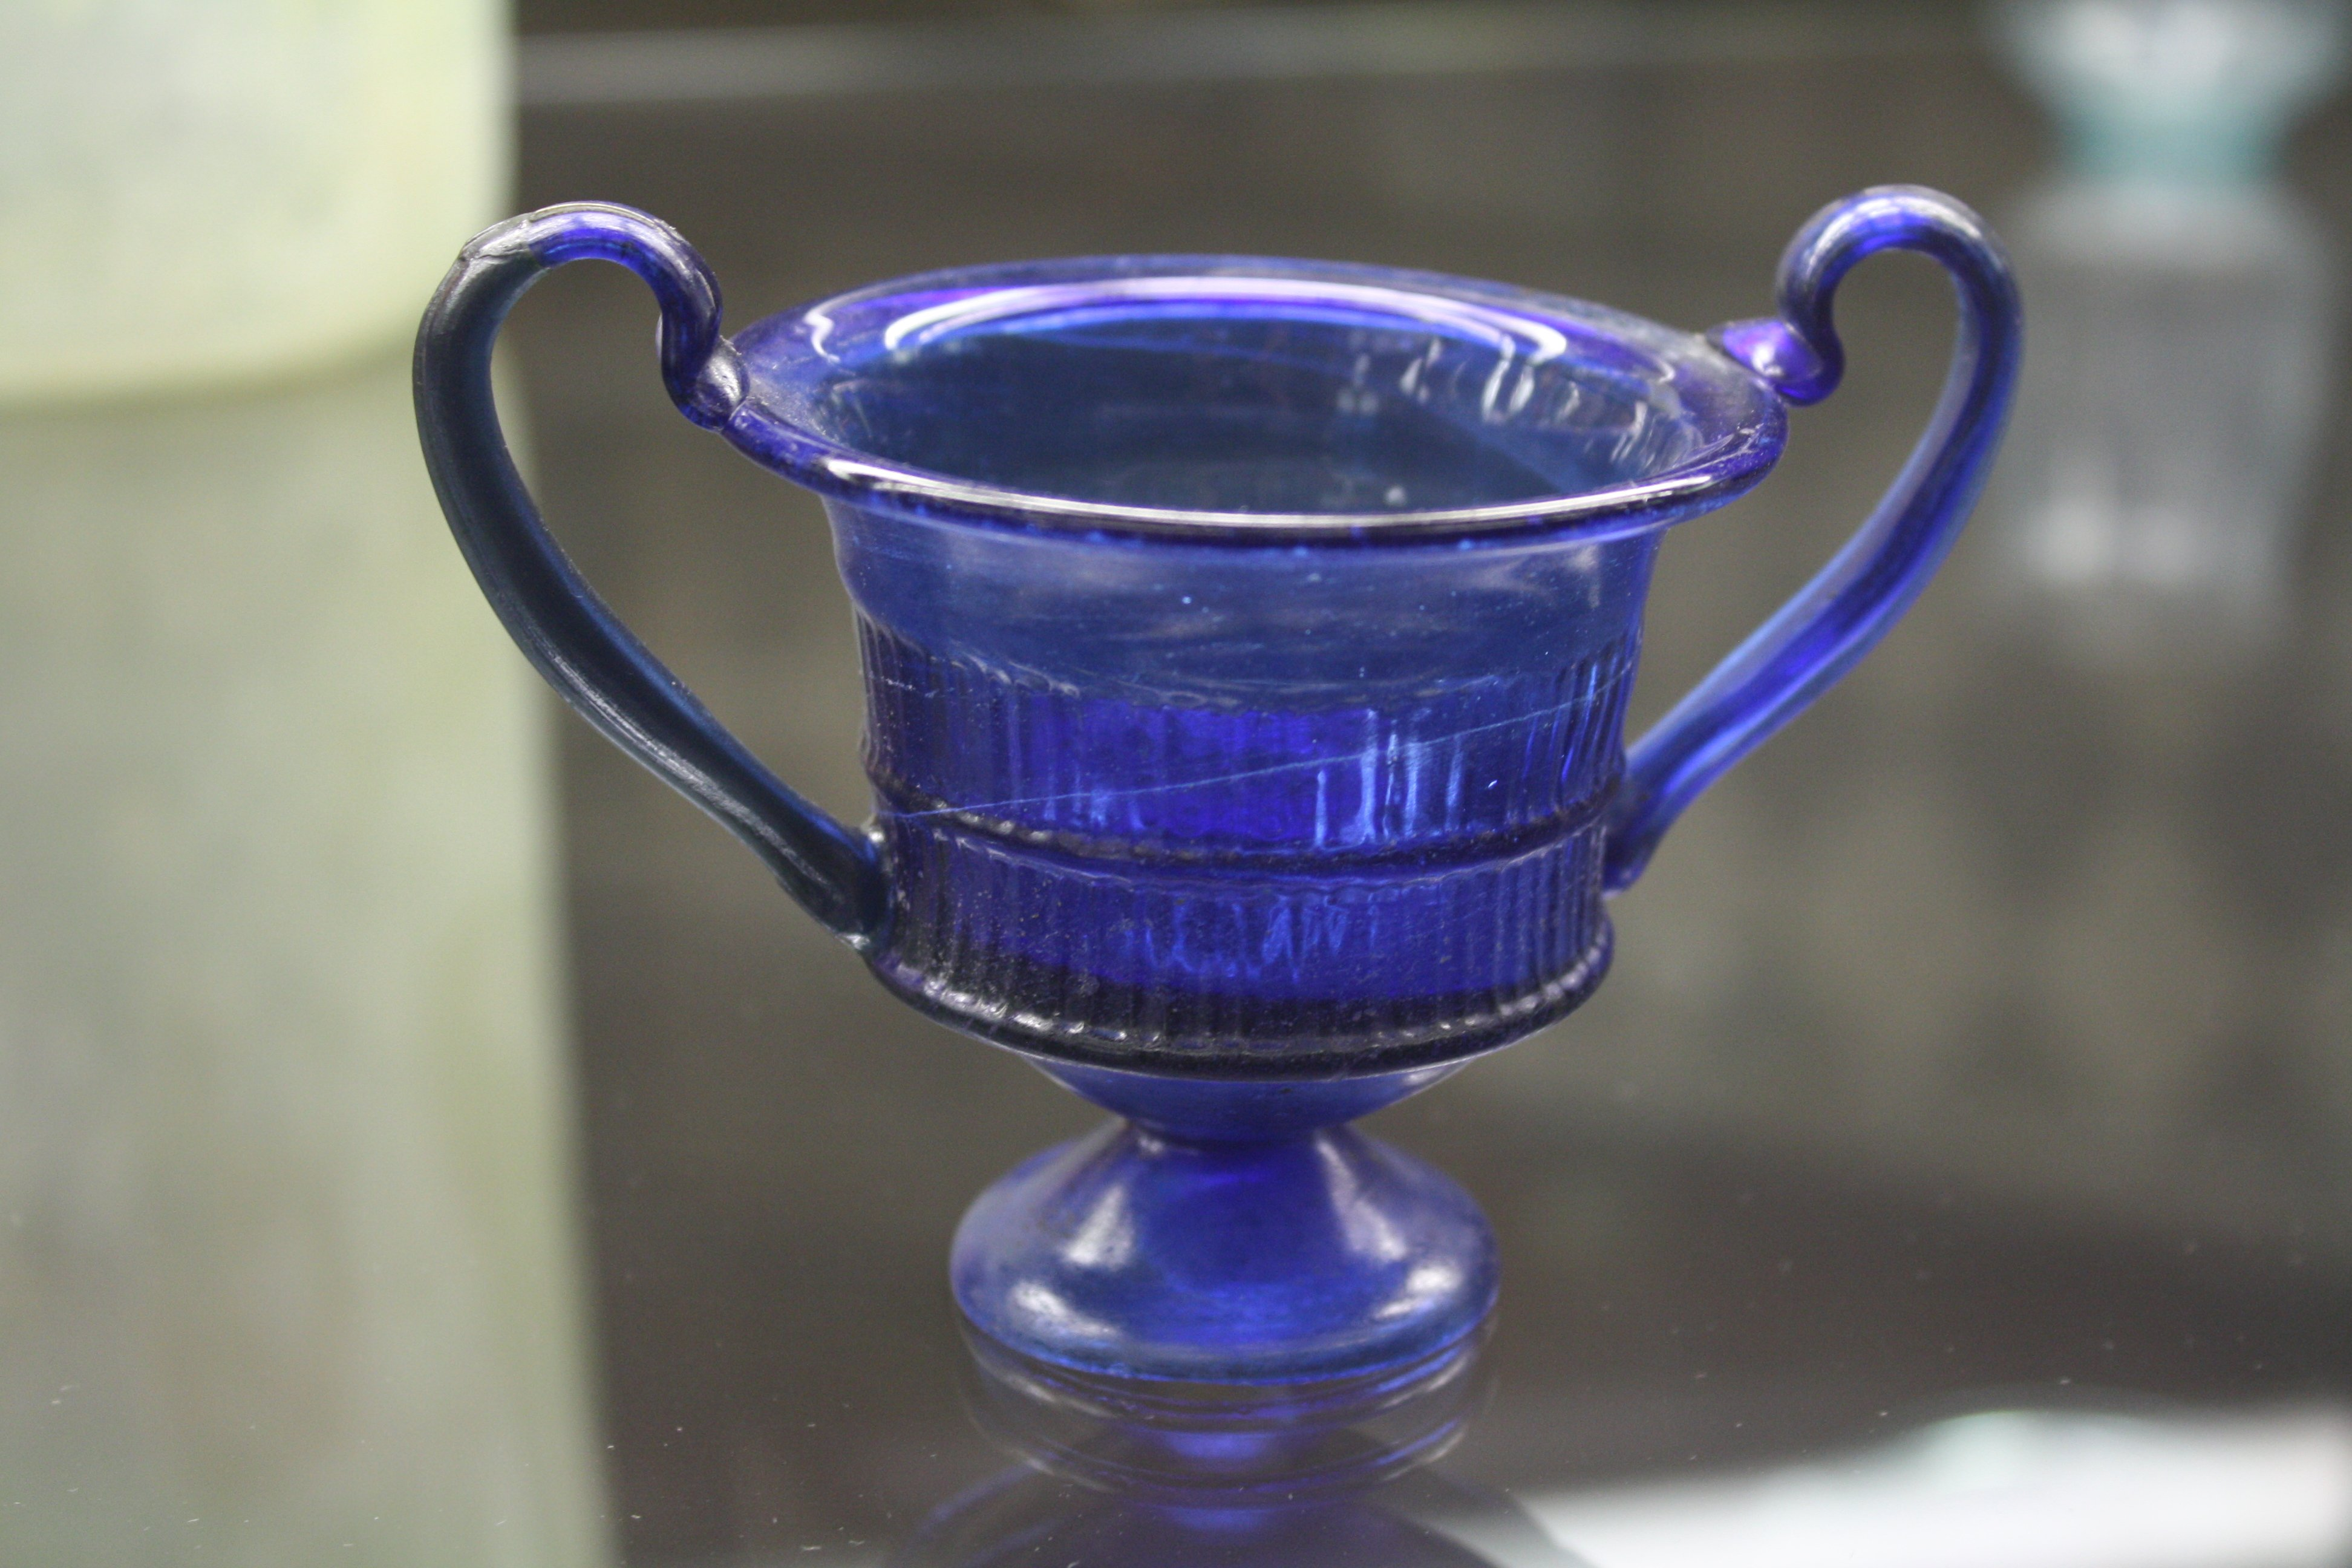 A glass kantharos or drinking cup.